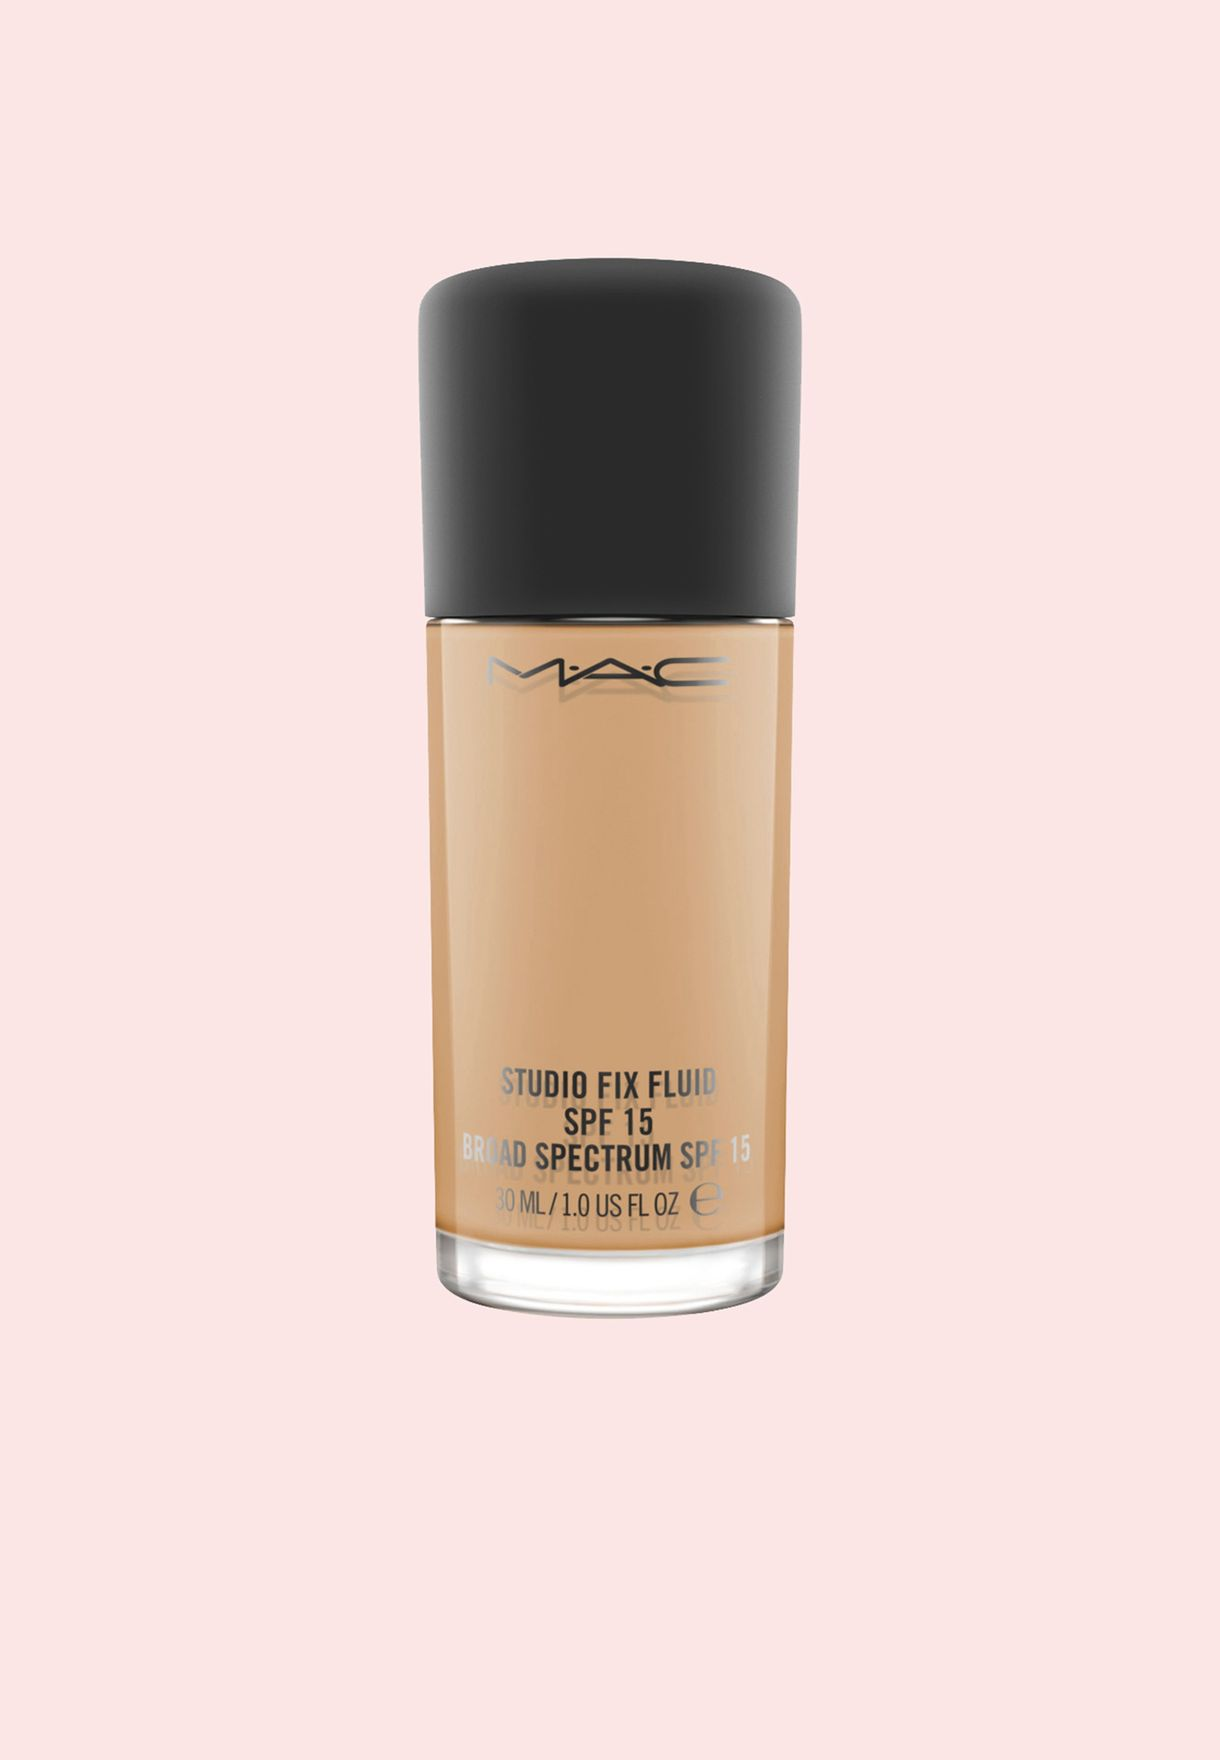 Studio Fix Fluid SPF 15 Foundation - NW35